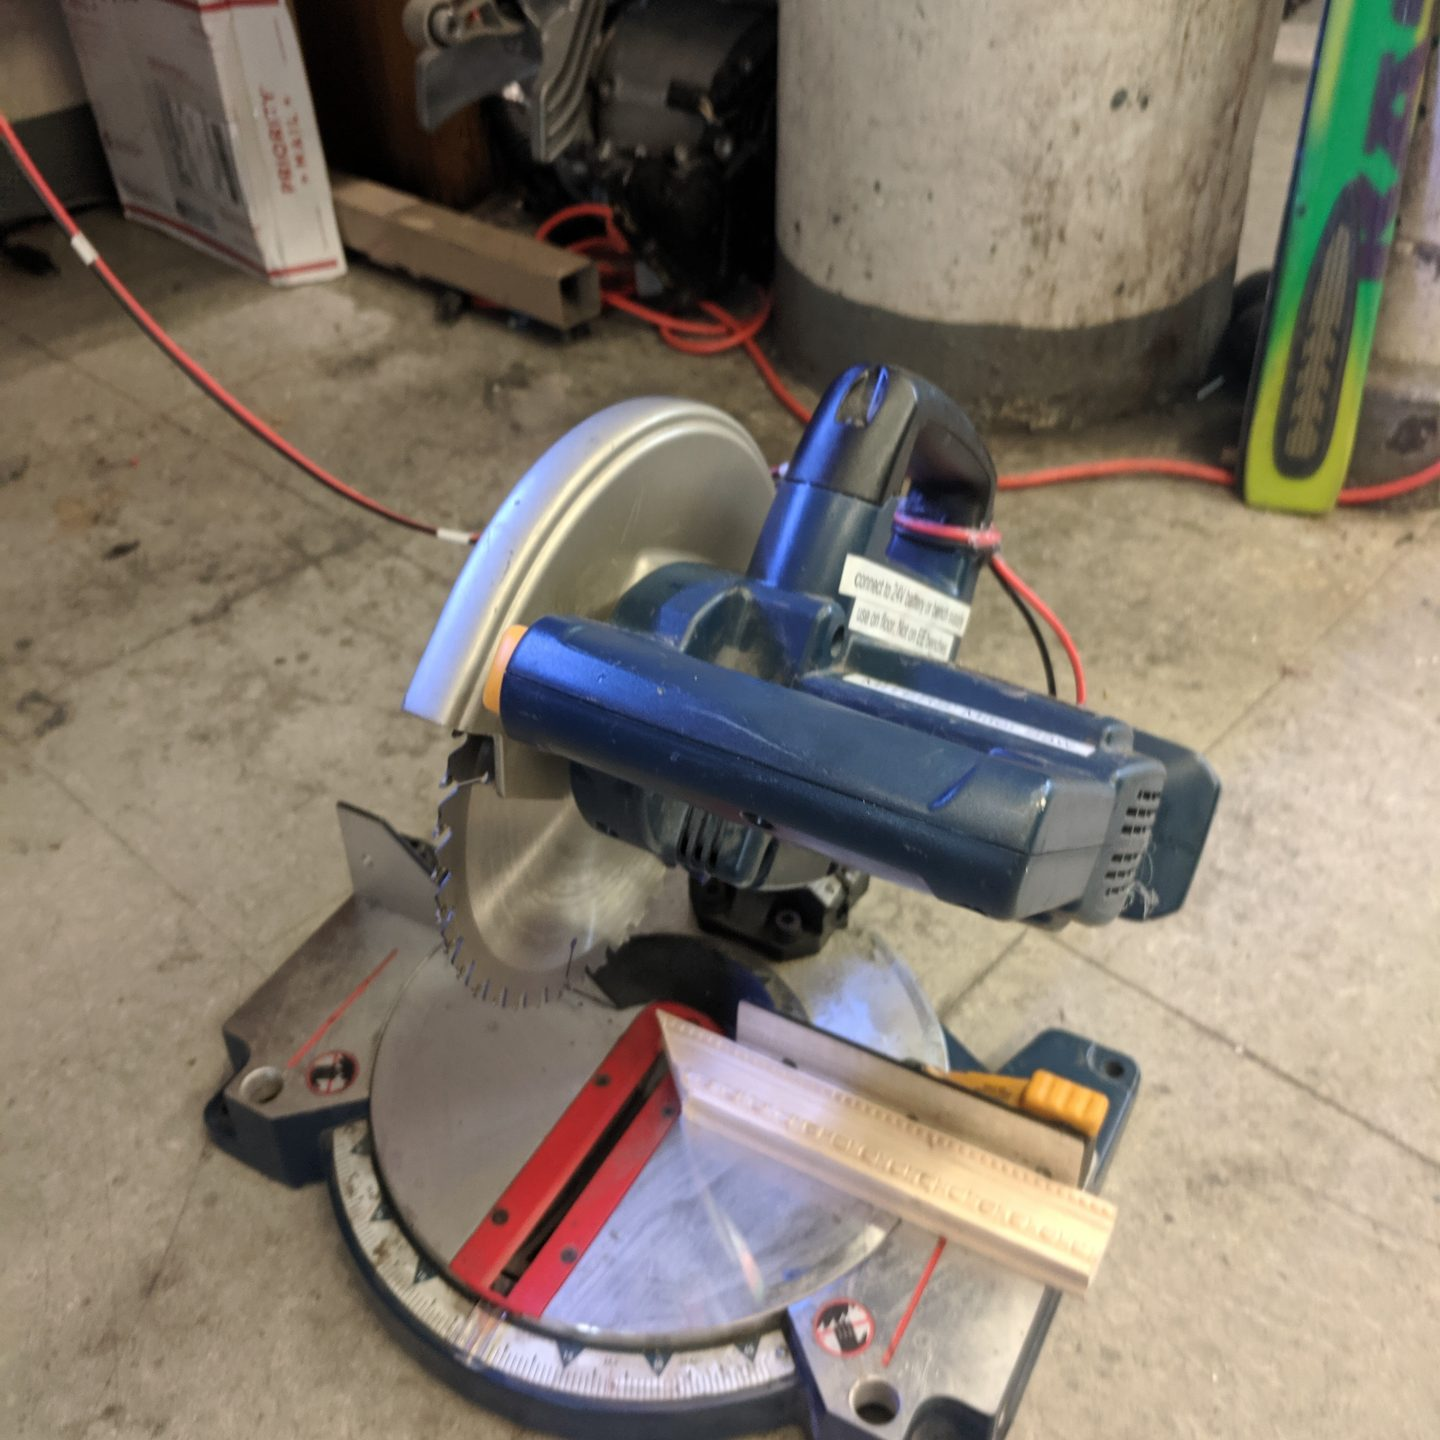 [7.06.19]We Don't Need no Stinking Batteries: Wiring up a battery powered MITERS Saw